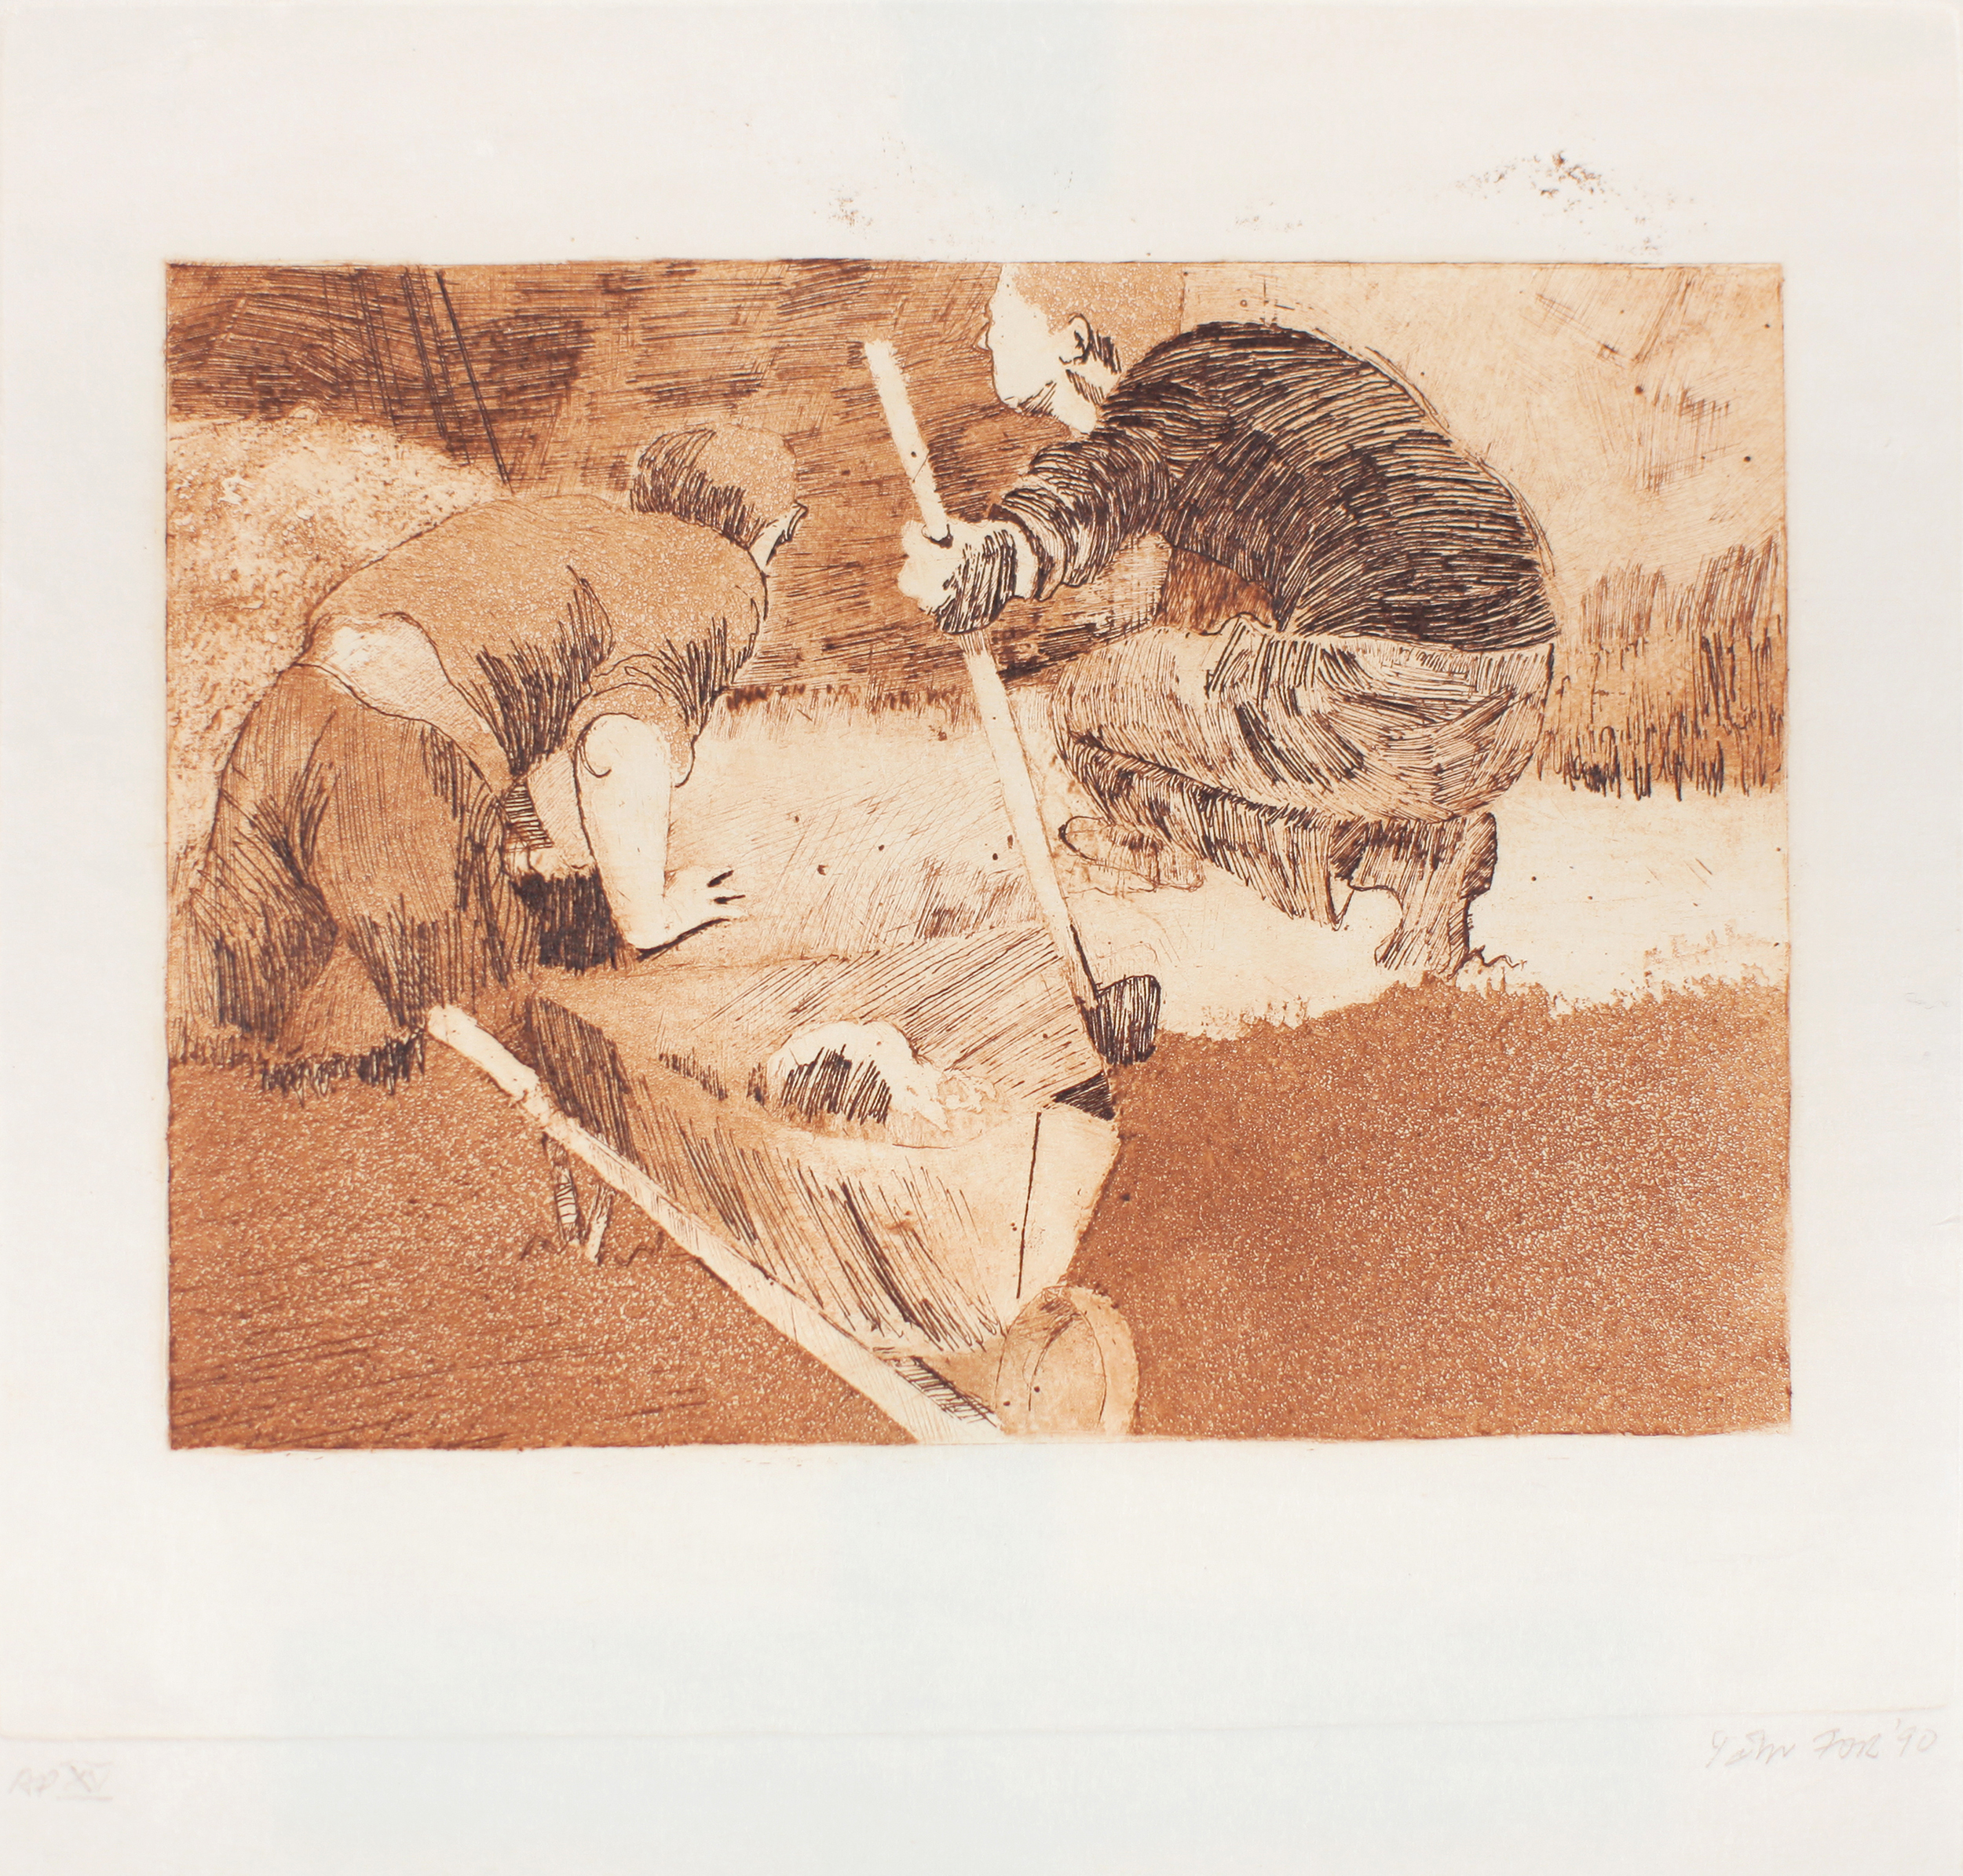 1990_Diggers_etching_drypoint_and_aquatint_on_paper_ap_paper_14x14in_image_8x11in_WPF431.jpg